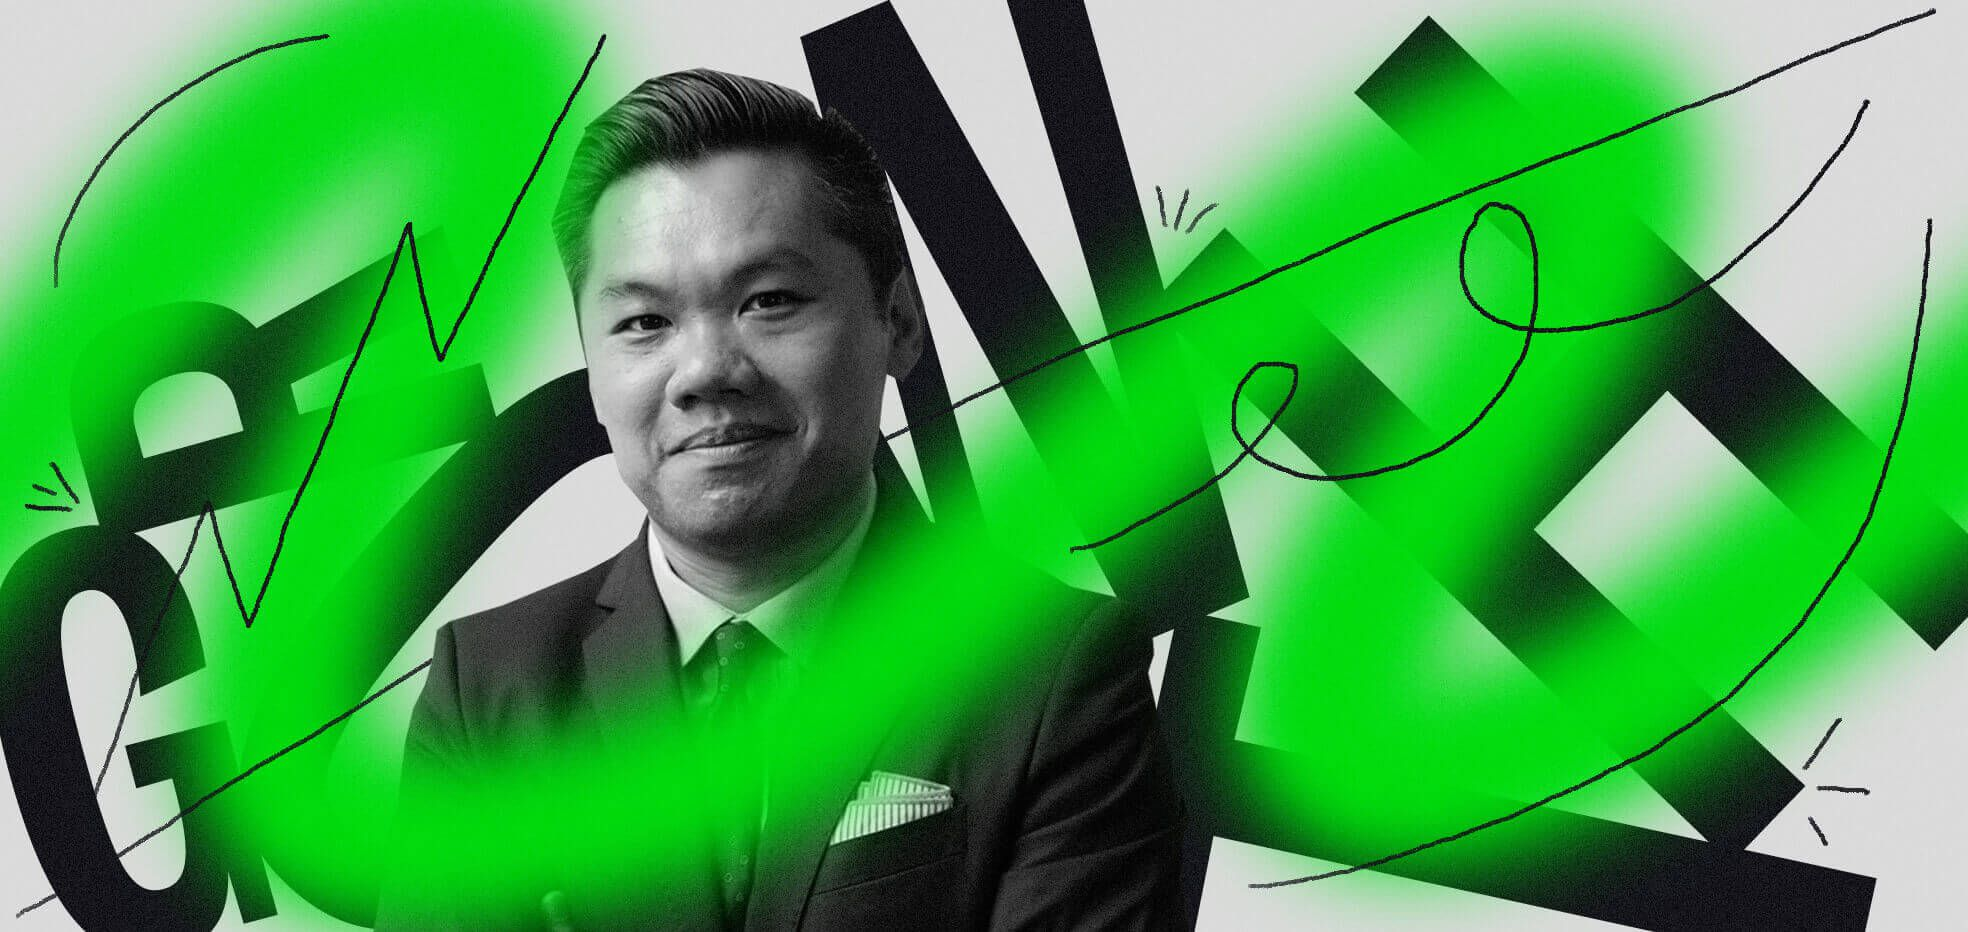 """Andrew Chen on finding the """"fresh powder"""" in growth 